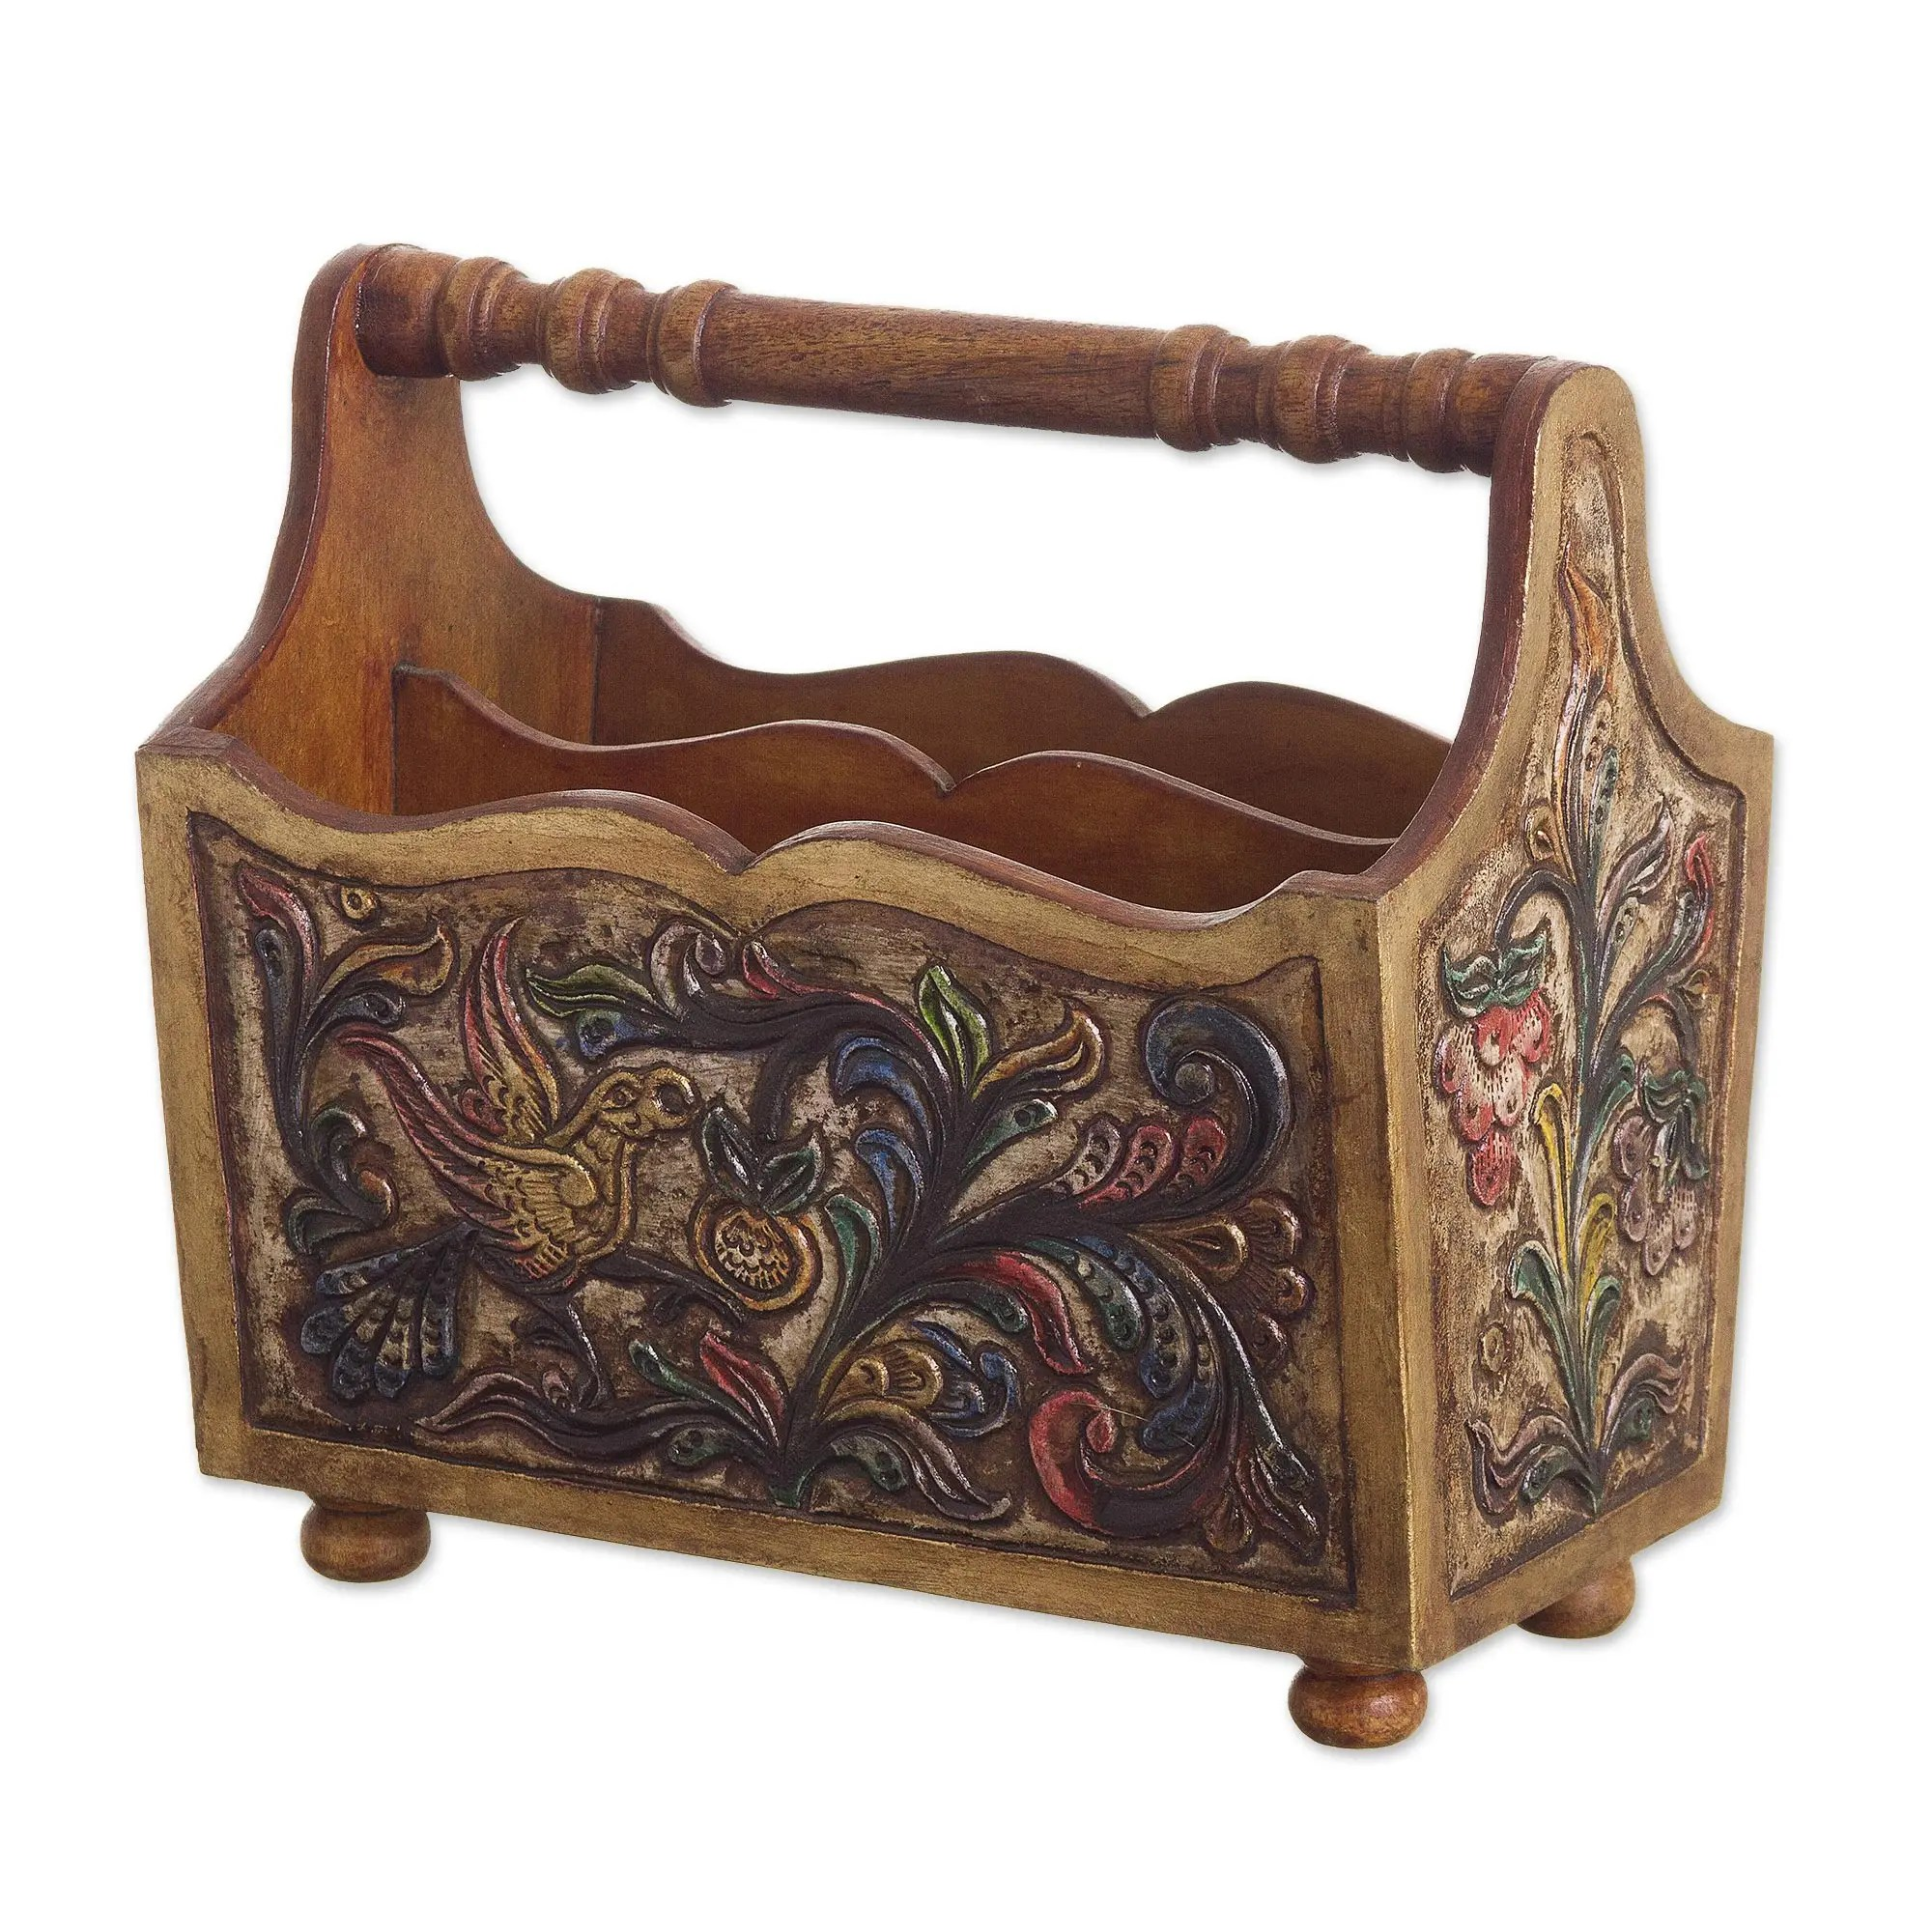 ornate mahogany and leather magazine rack from peru birds in flight